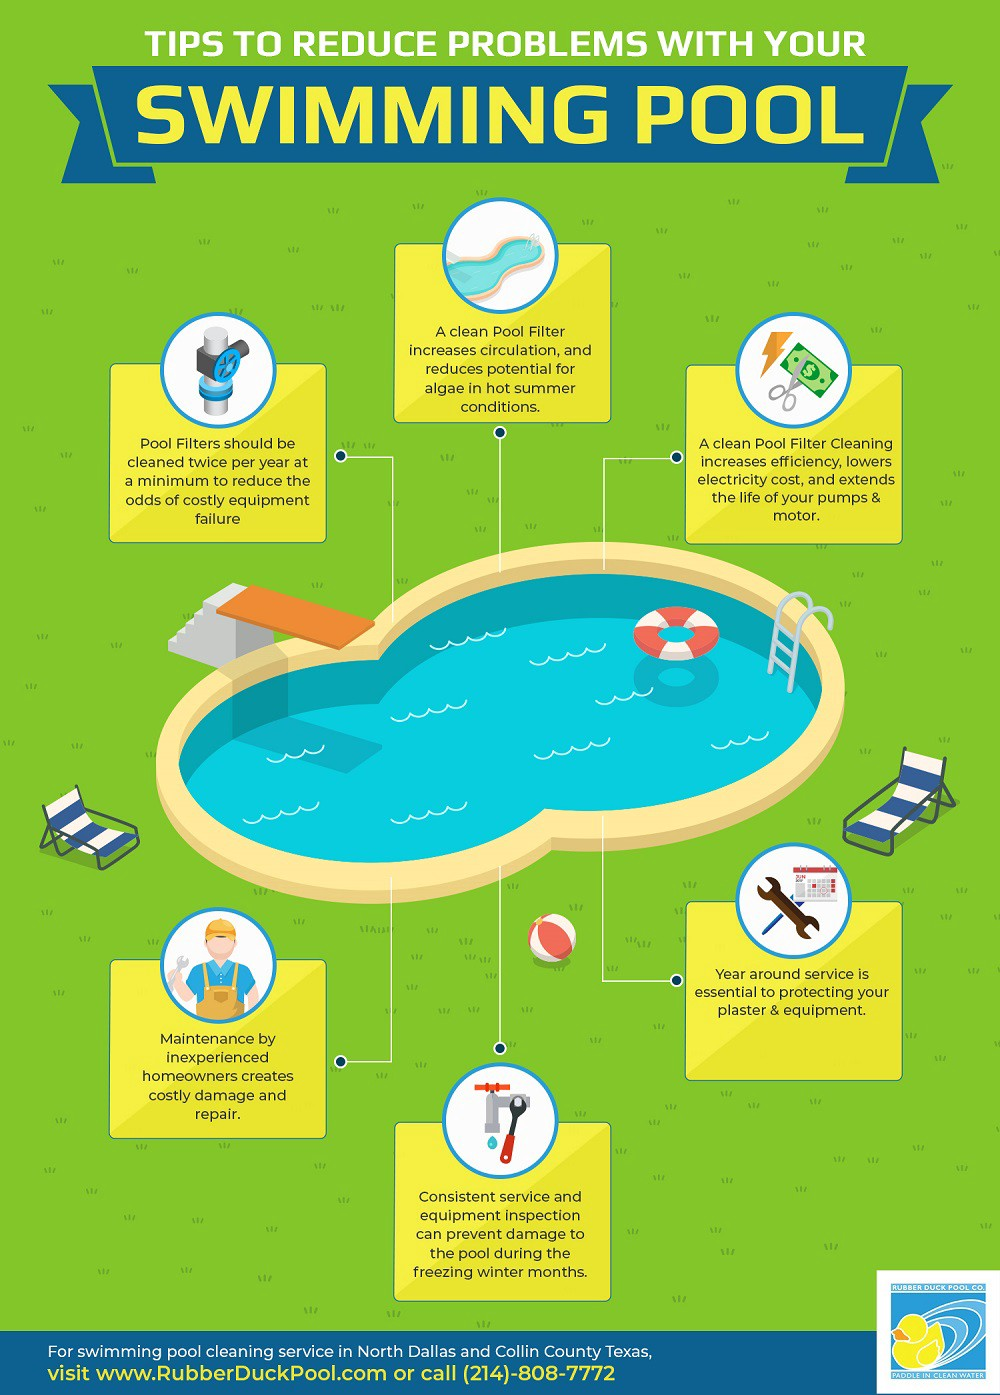 Tips To Reduce Problems With Your Swimming Pool - Rubber